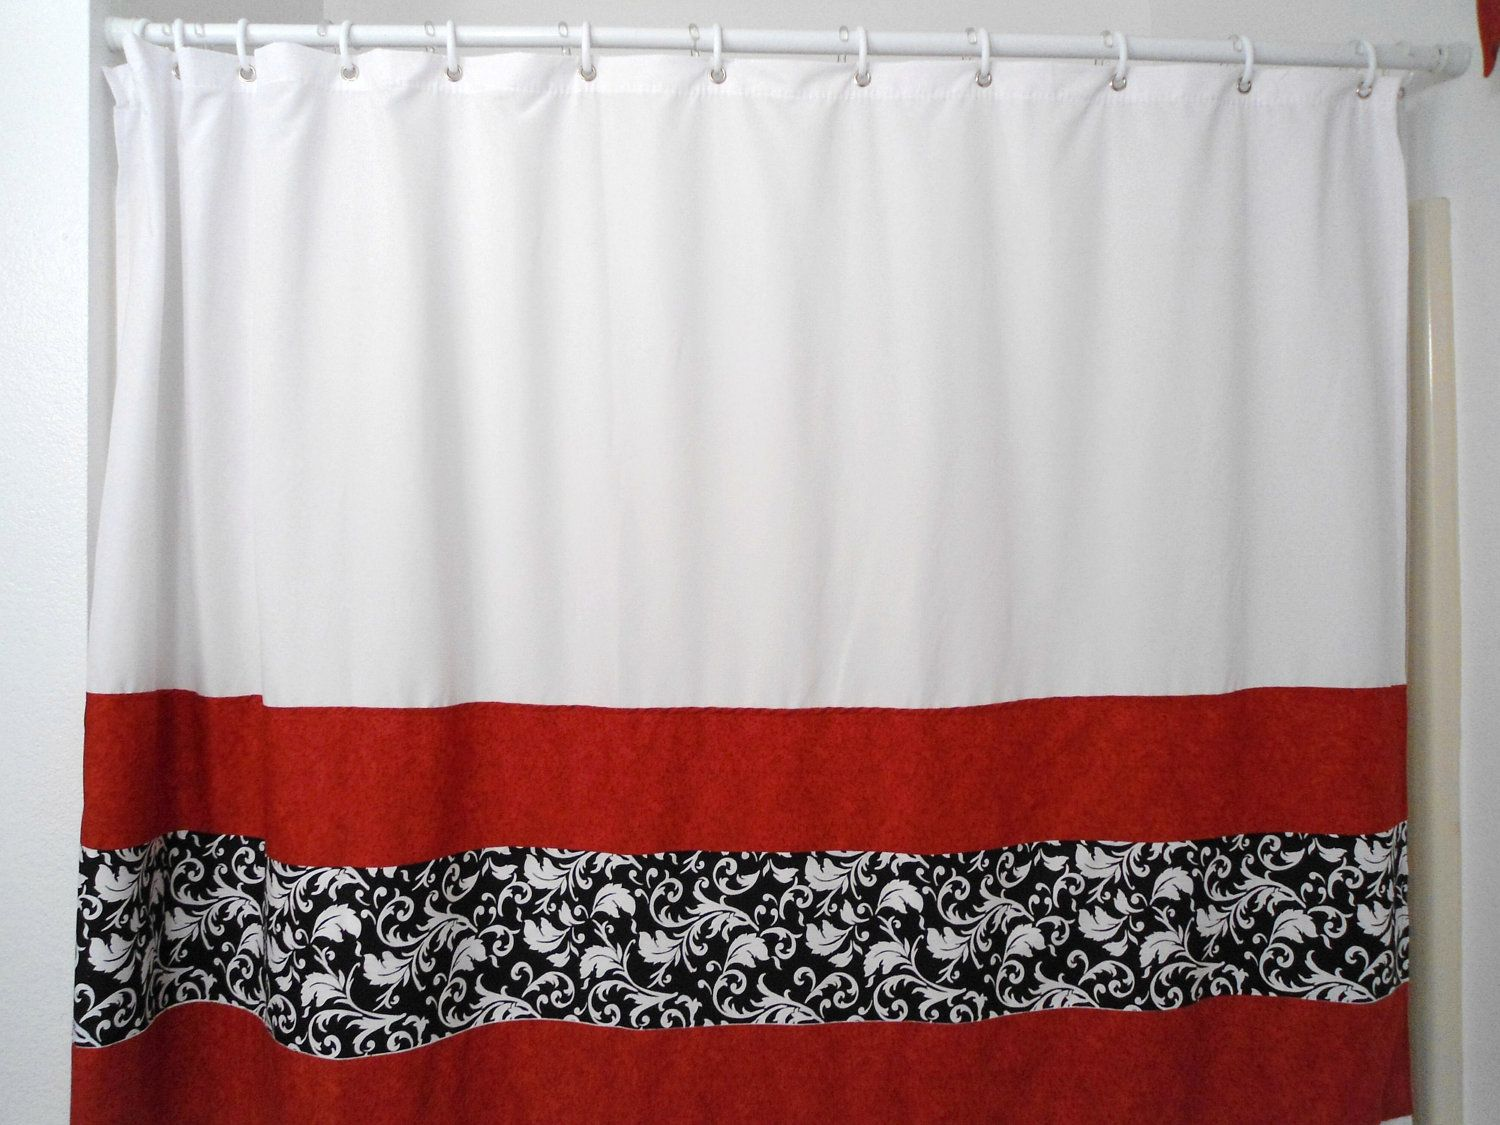 curtains black and bedroom white red thepalmahome for room com living